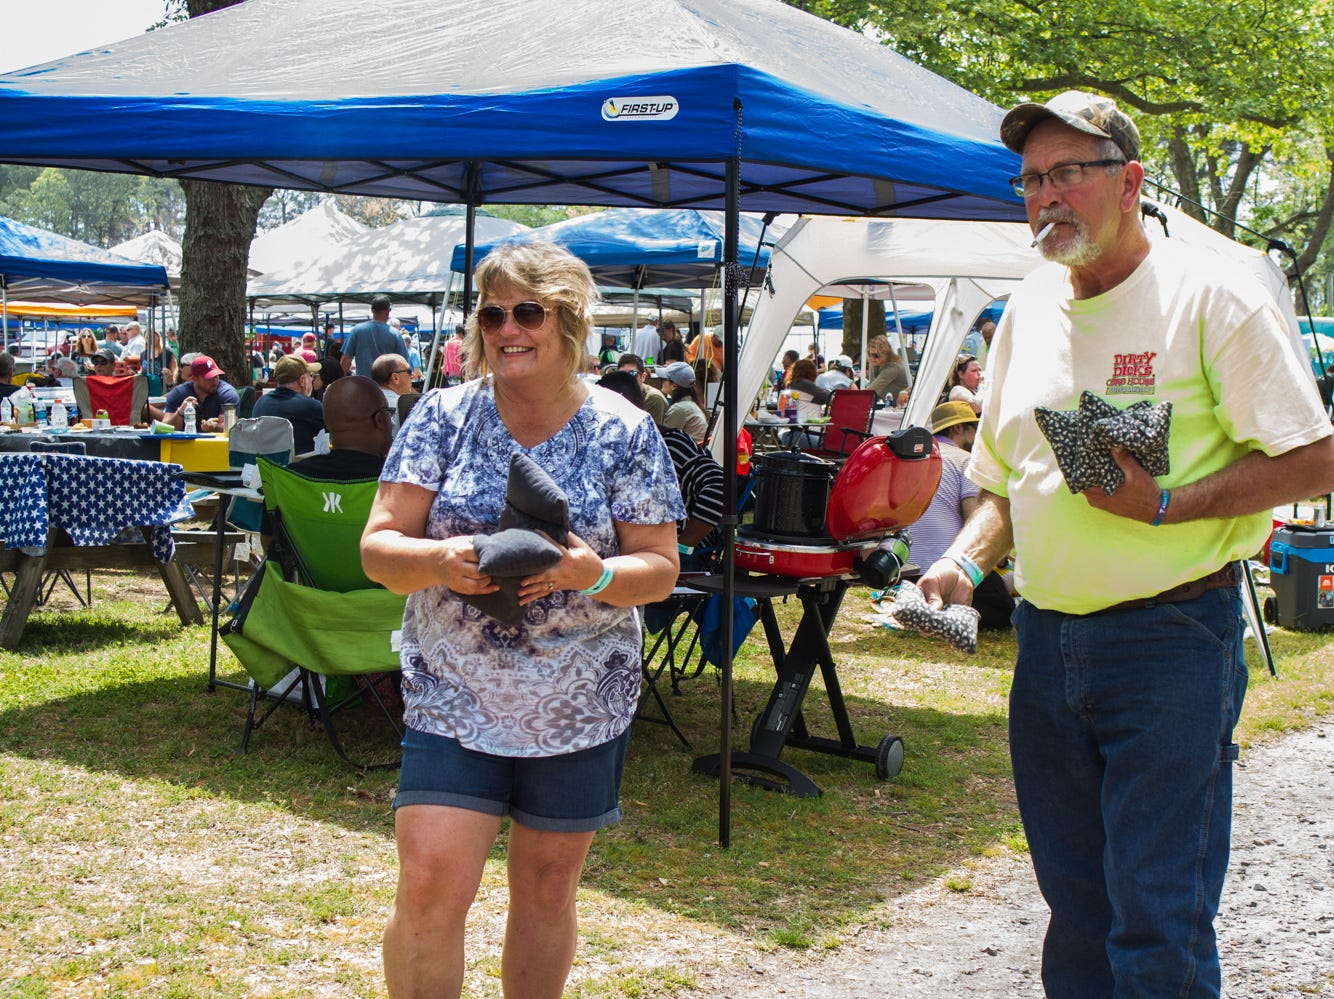 Joy Keller of Mercersburg, PA and Jim Pentz of Greencastle, PA get ready for their turn of cornhole on Saturday, May 4, 2019 at the Chincoteague Seafood Festival in Chincoteague, VA.